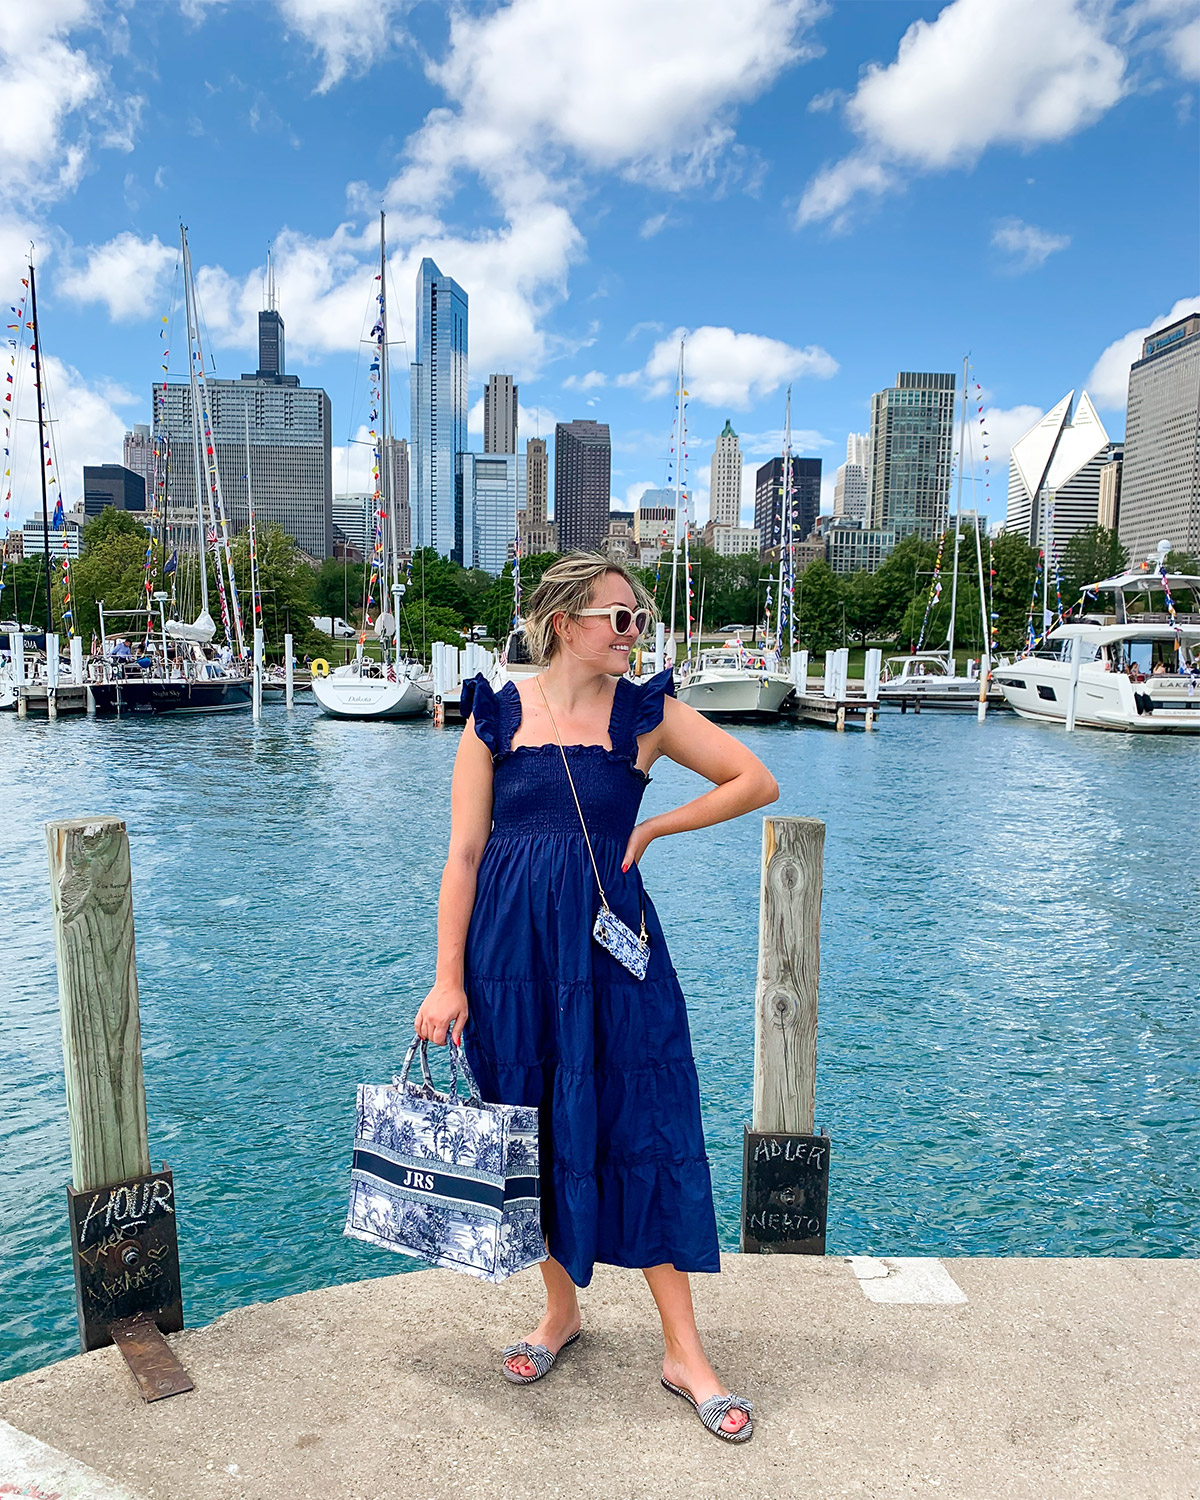 Blue Nap Dress worn by Jessica Sturdy on a dock at Chicago's Yacht Club